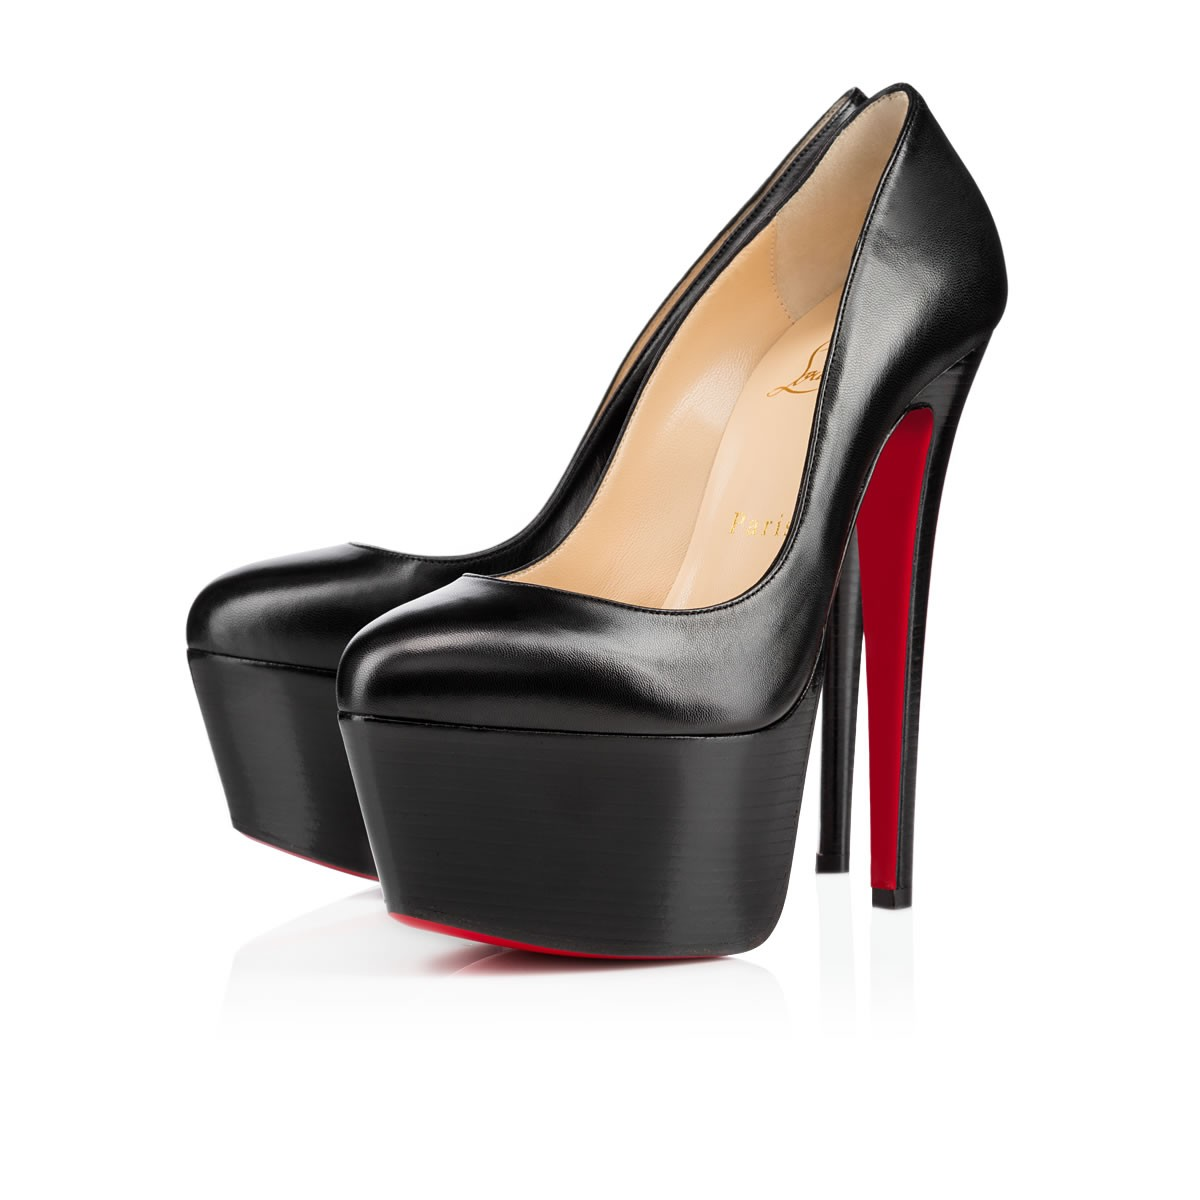 Victoria 160 Black Leather - Women Shoes - Christian Louboutin